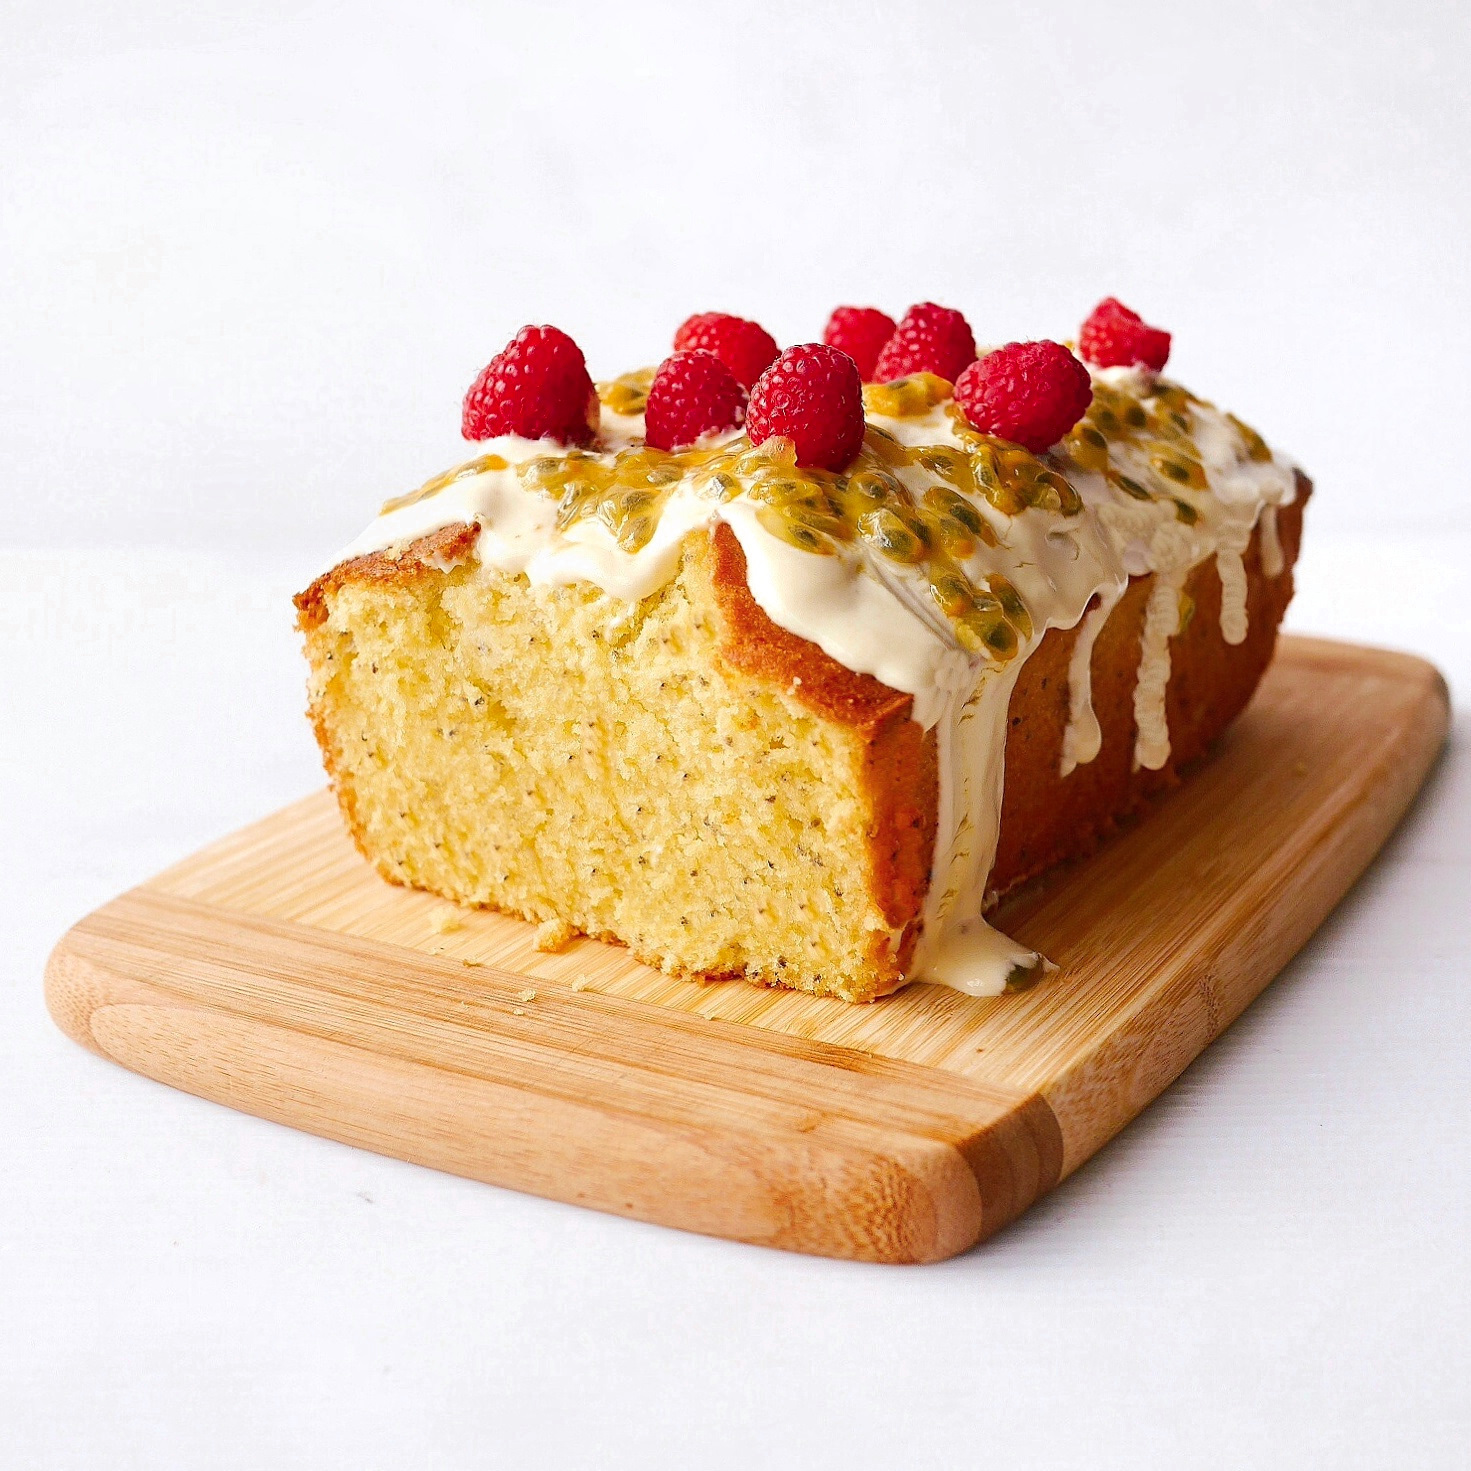 yellowfingers: {Recipe} Passionfruit Yogurt Chia Loaf with Coconut ...